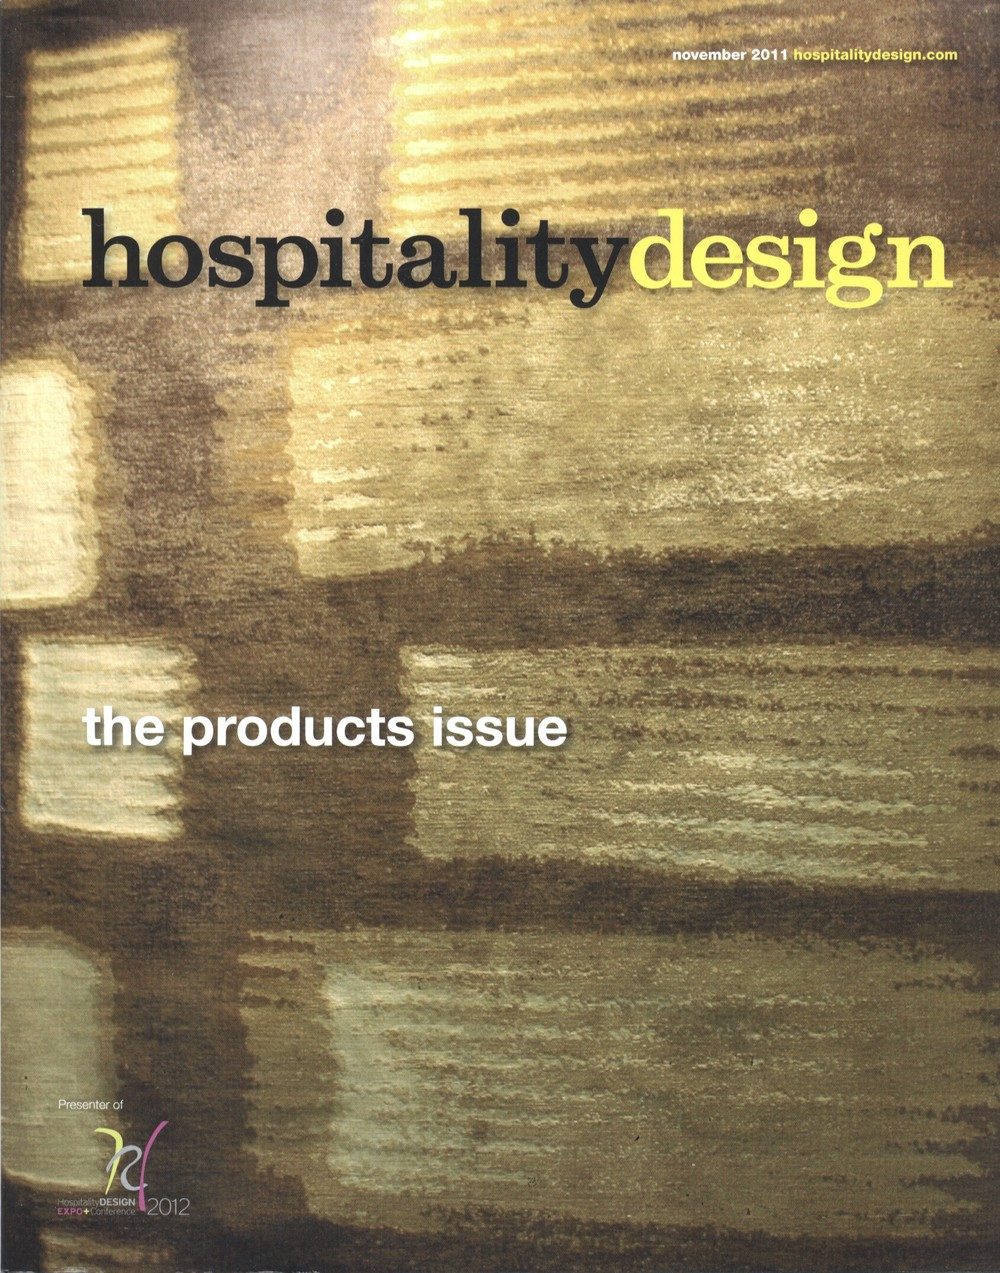 HOSPITALITY DESIGN, AUGUST 2011